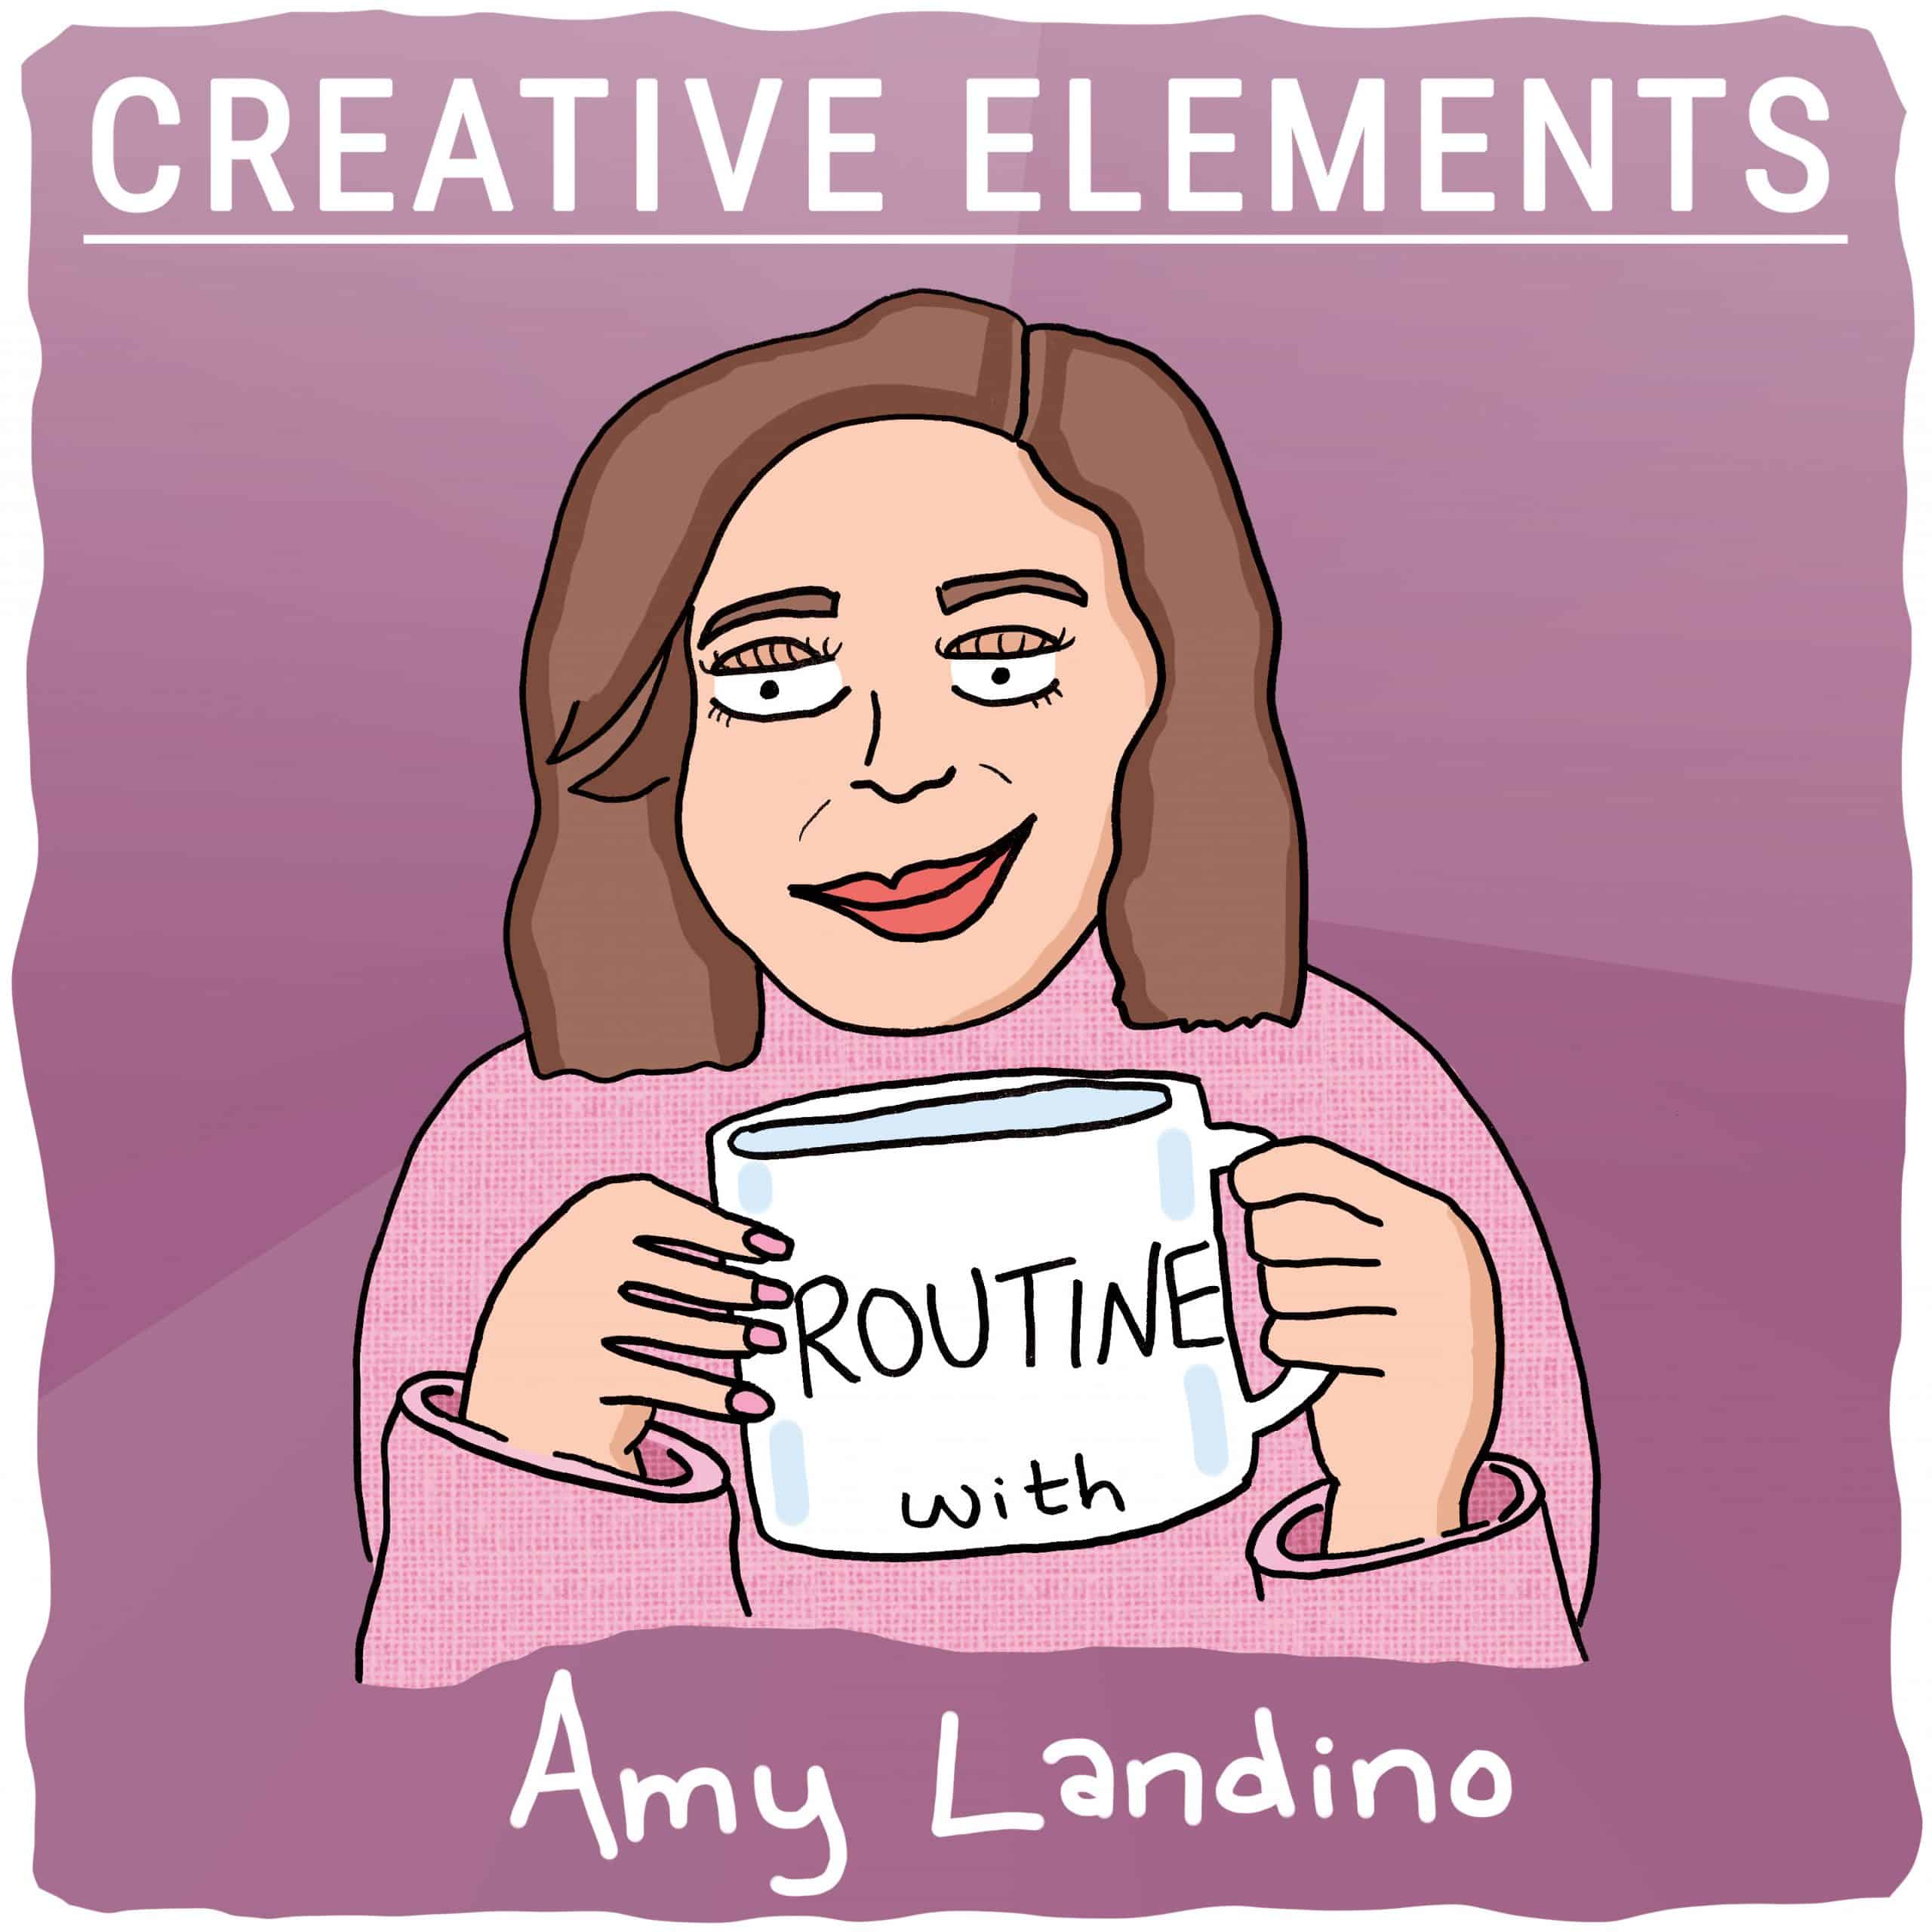 Amy Landino on Creative Elements